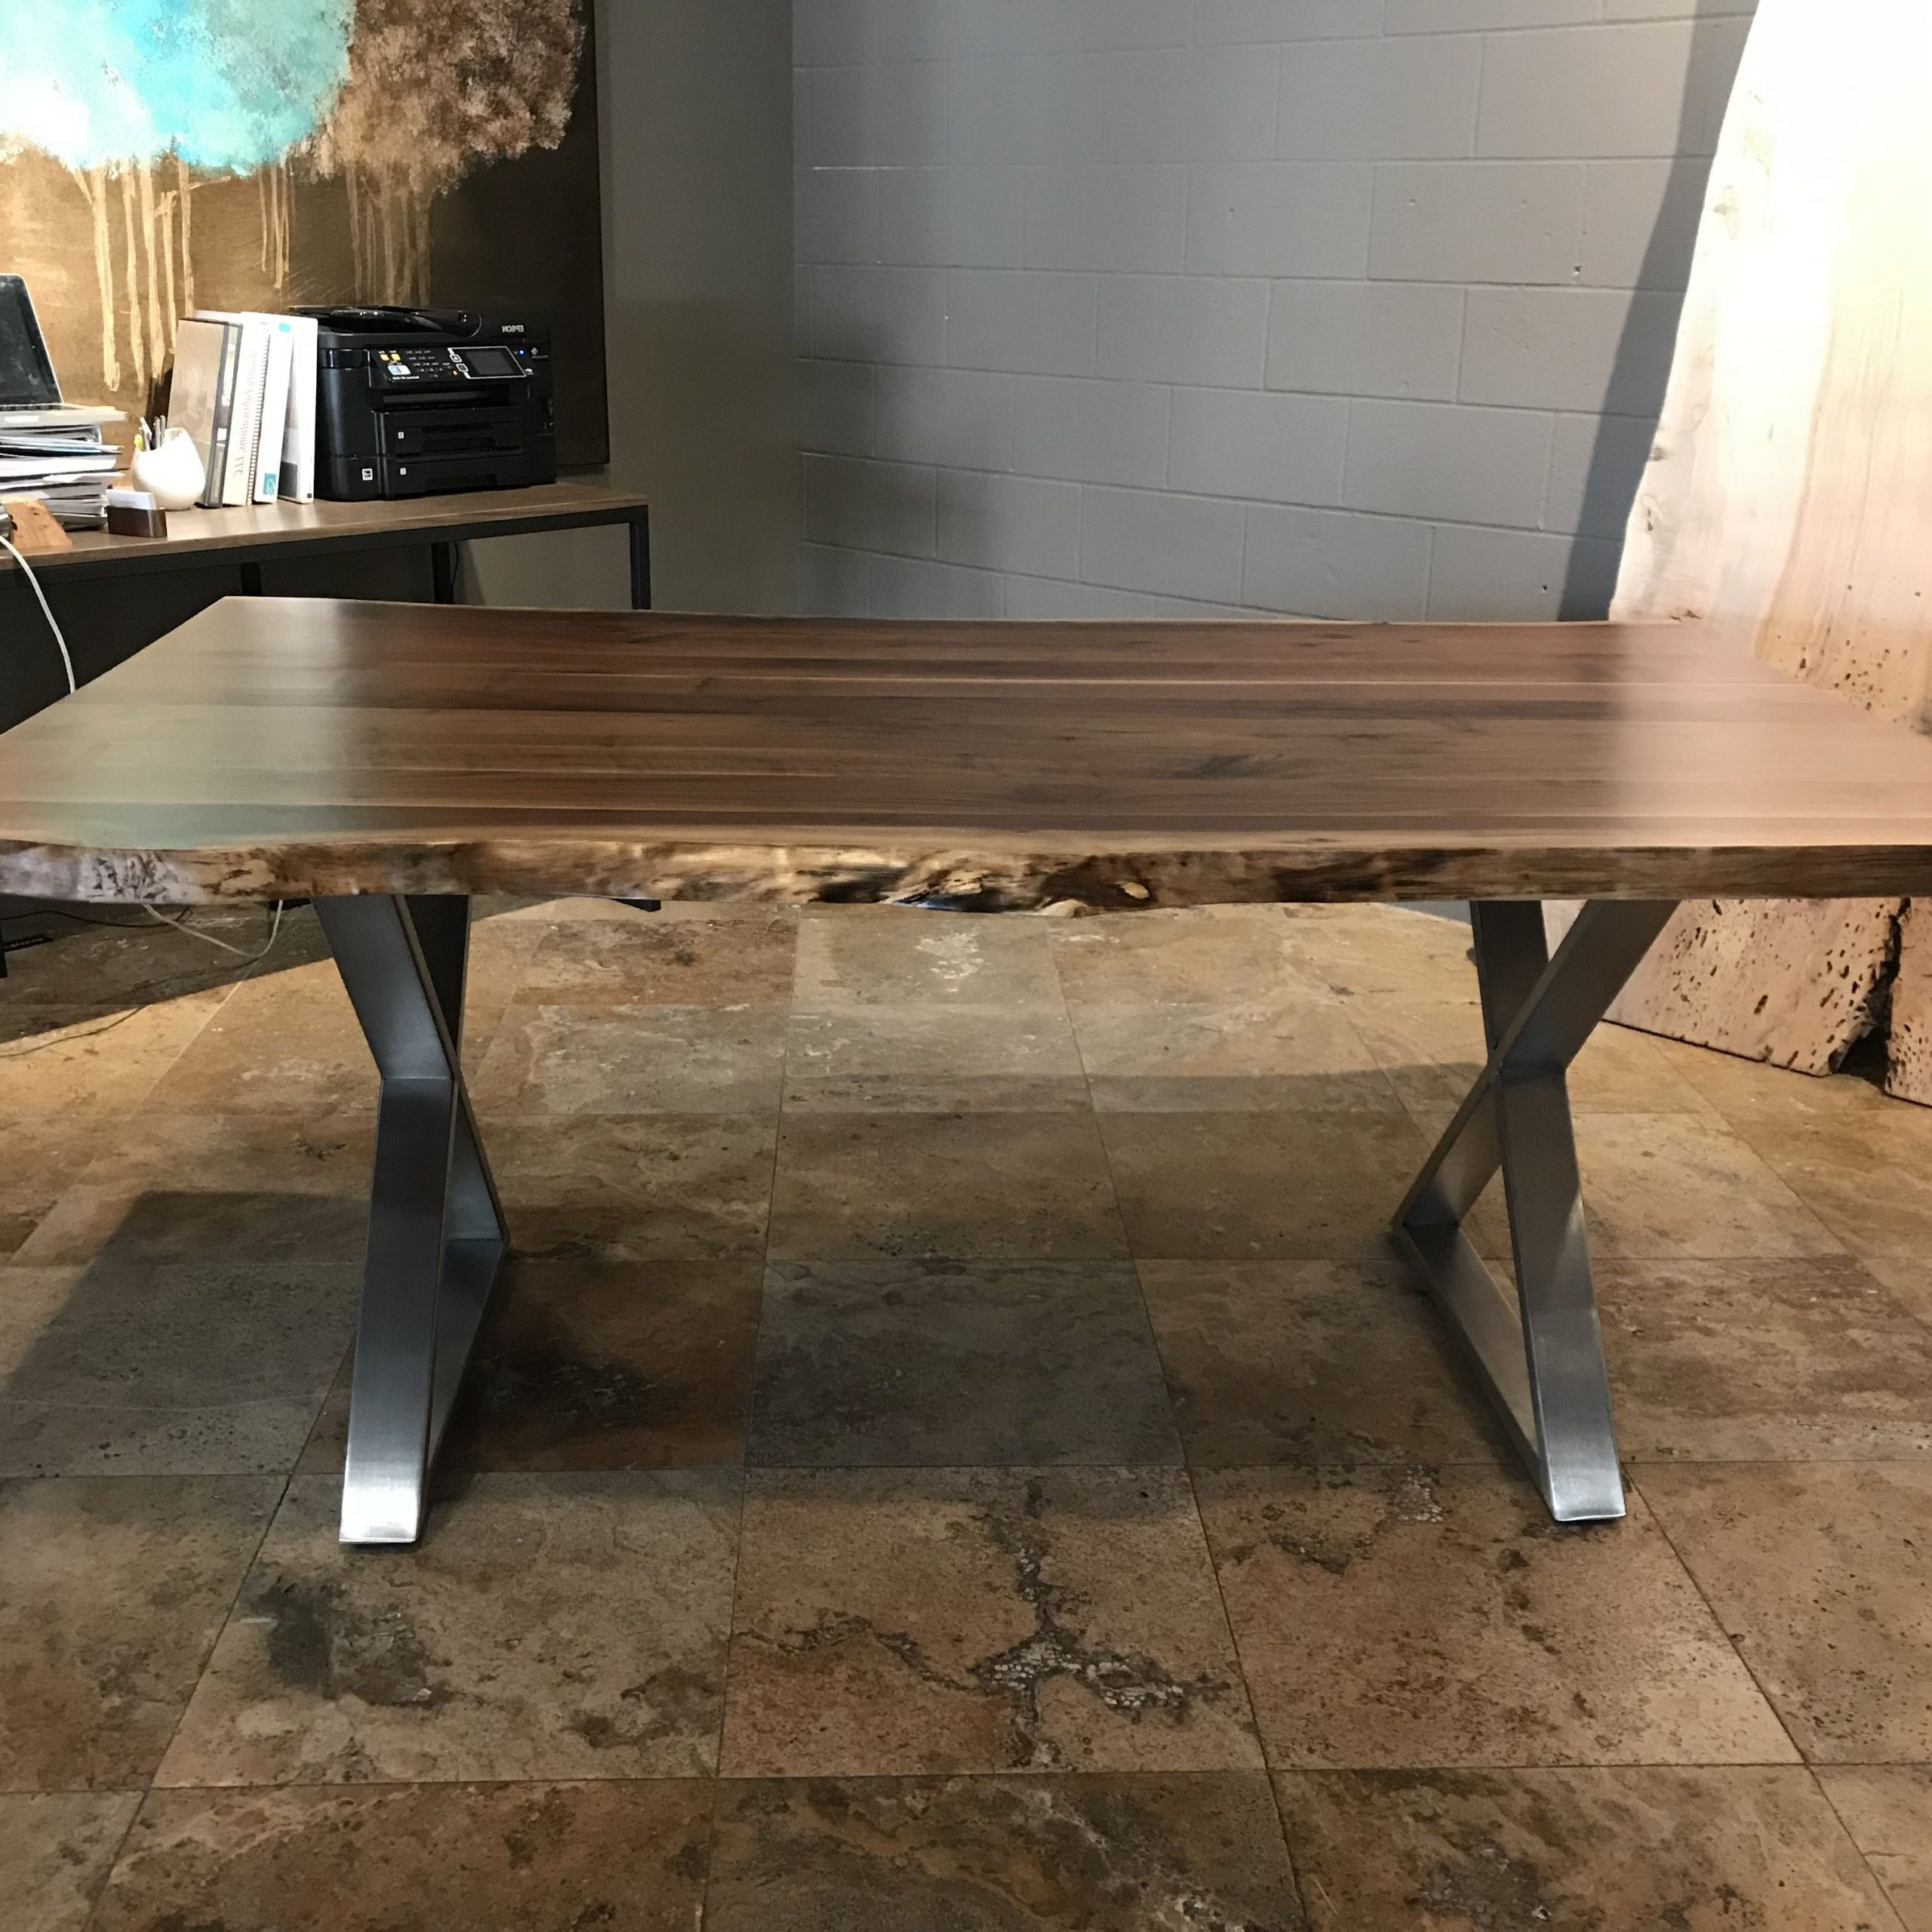 Buy A Custom Live Edge Dining Table, Made To Order From With Latest Walnut Finish Live Edge Wood Contemporary Dining Tables (View 3 of 30)